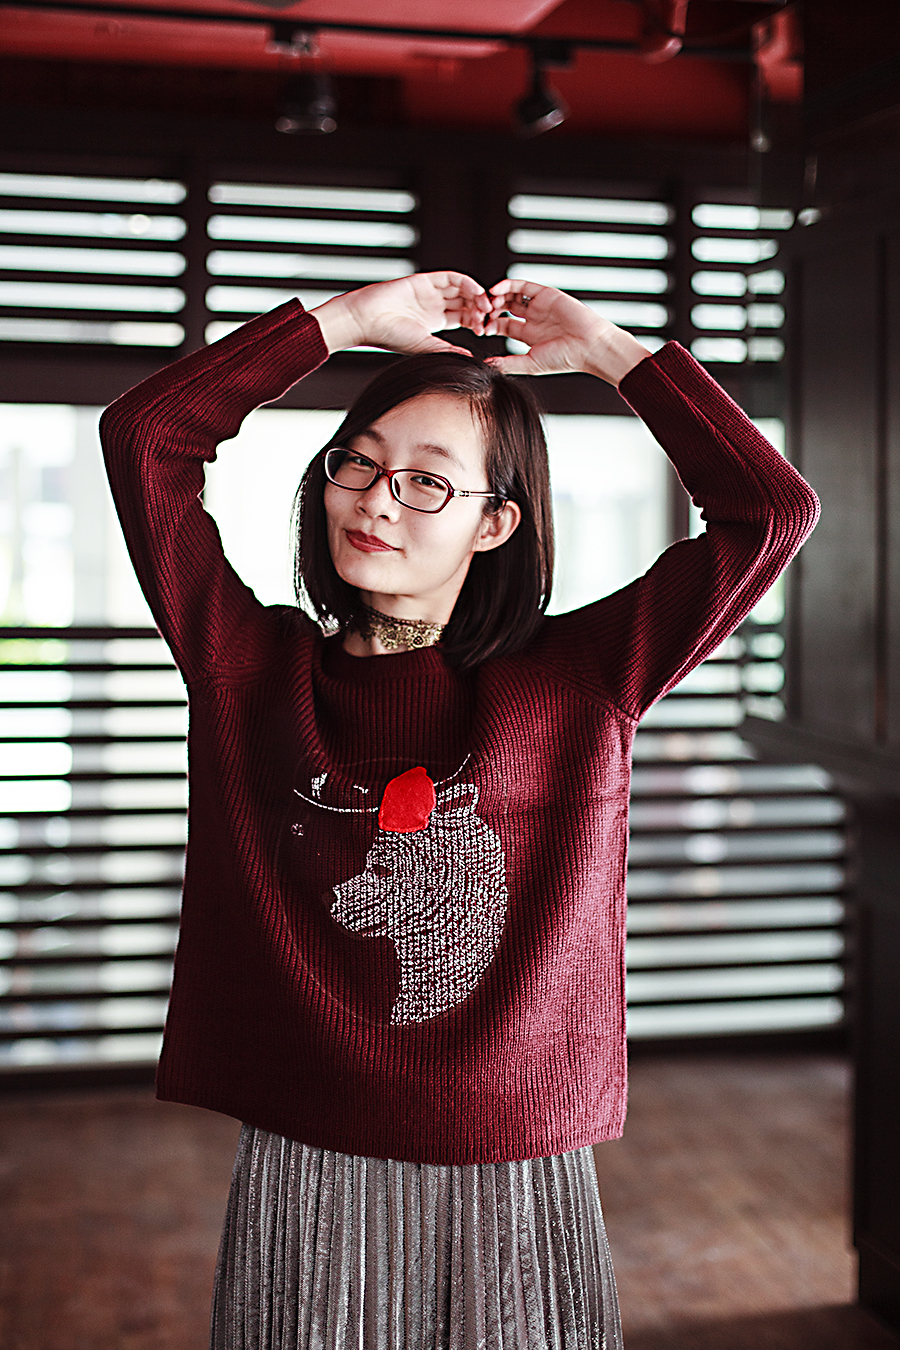 Making a heart shape with my arms in my bear sweater.